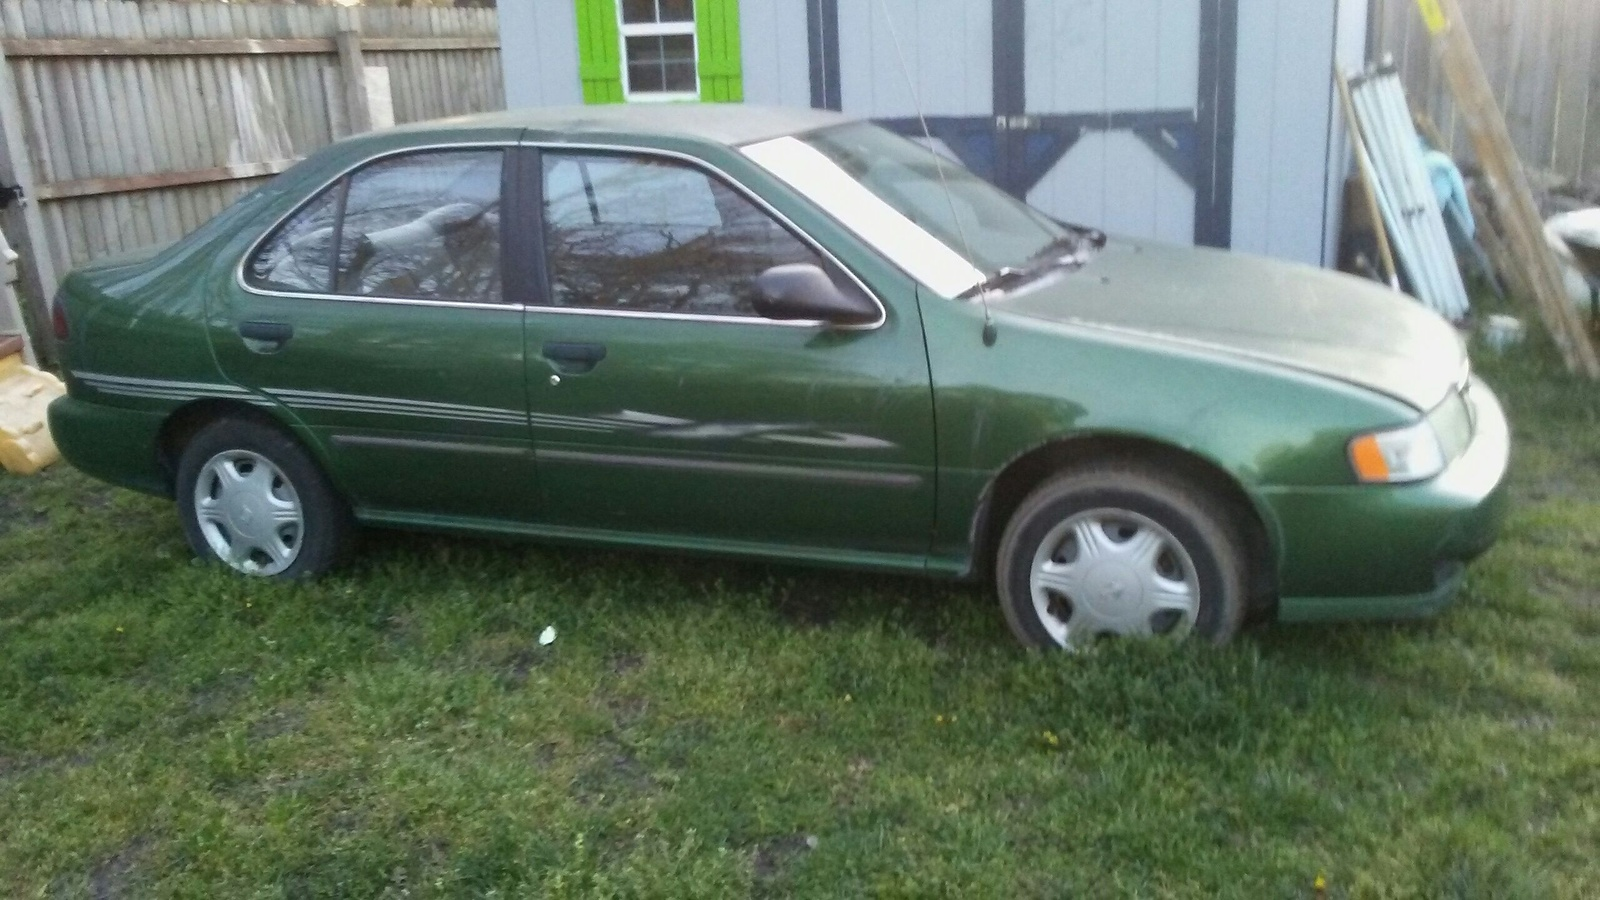 Nissan Sentra Questions - I posted my car for sale, how do i find it ...